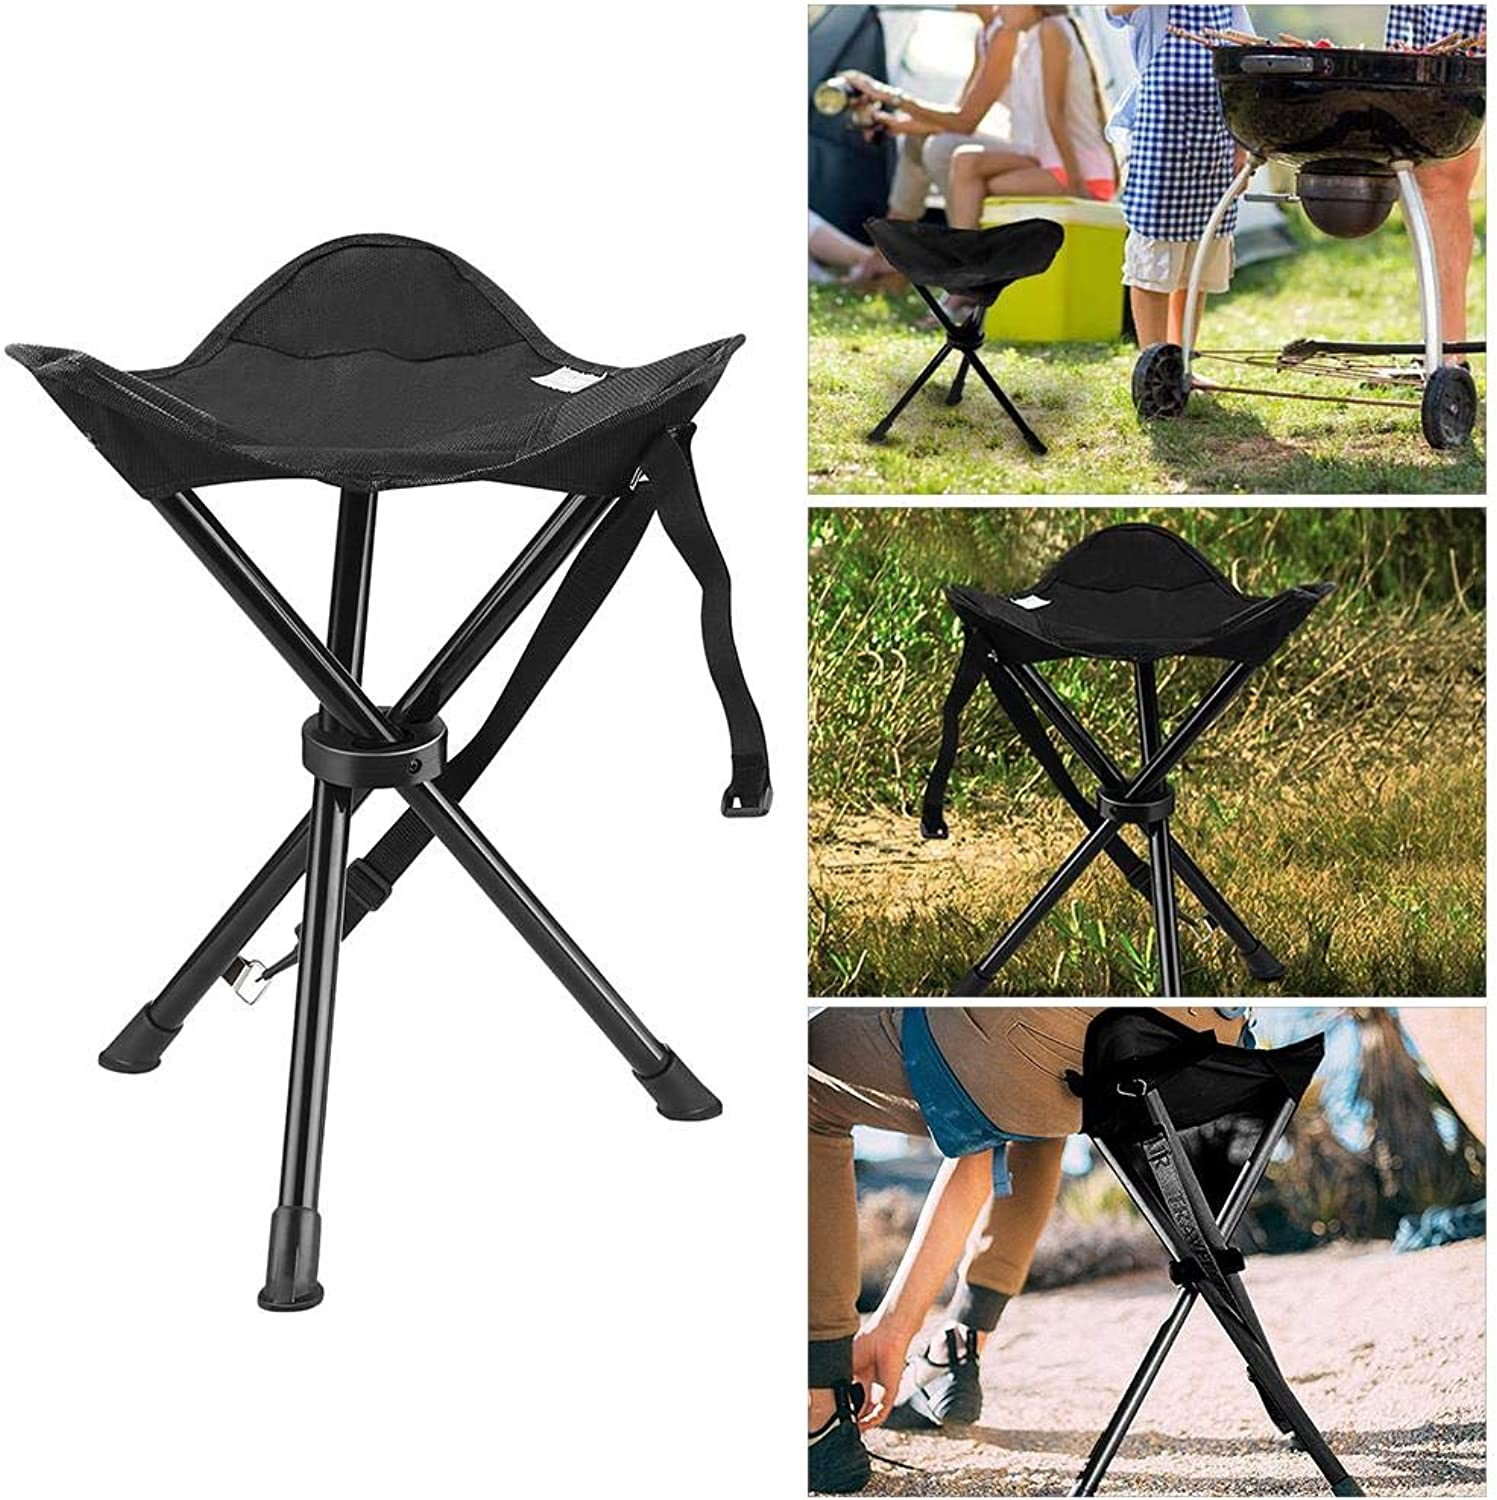 Folding Tripod Stool Portable Camping Chair, Support 260 lbs, for Fishing, Beach, Hiking